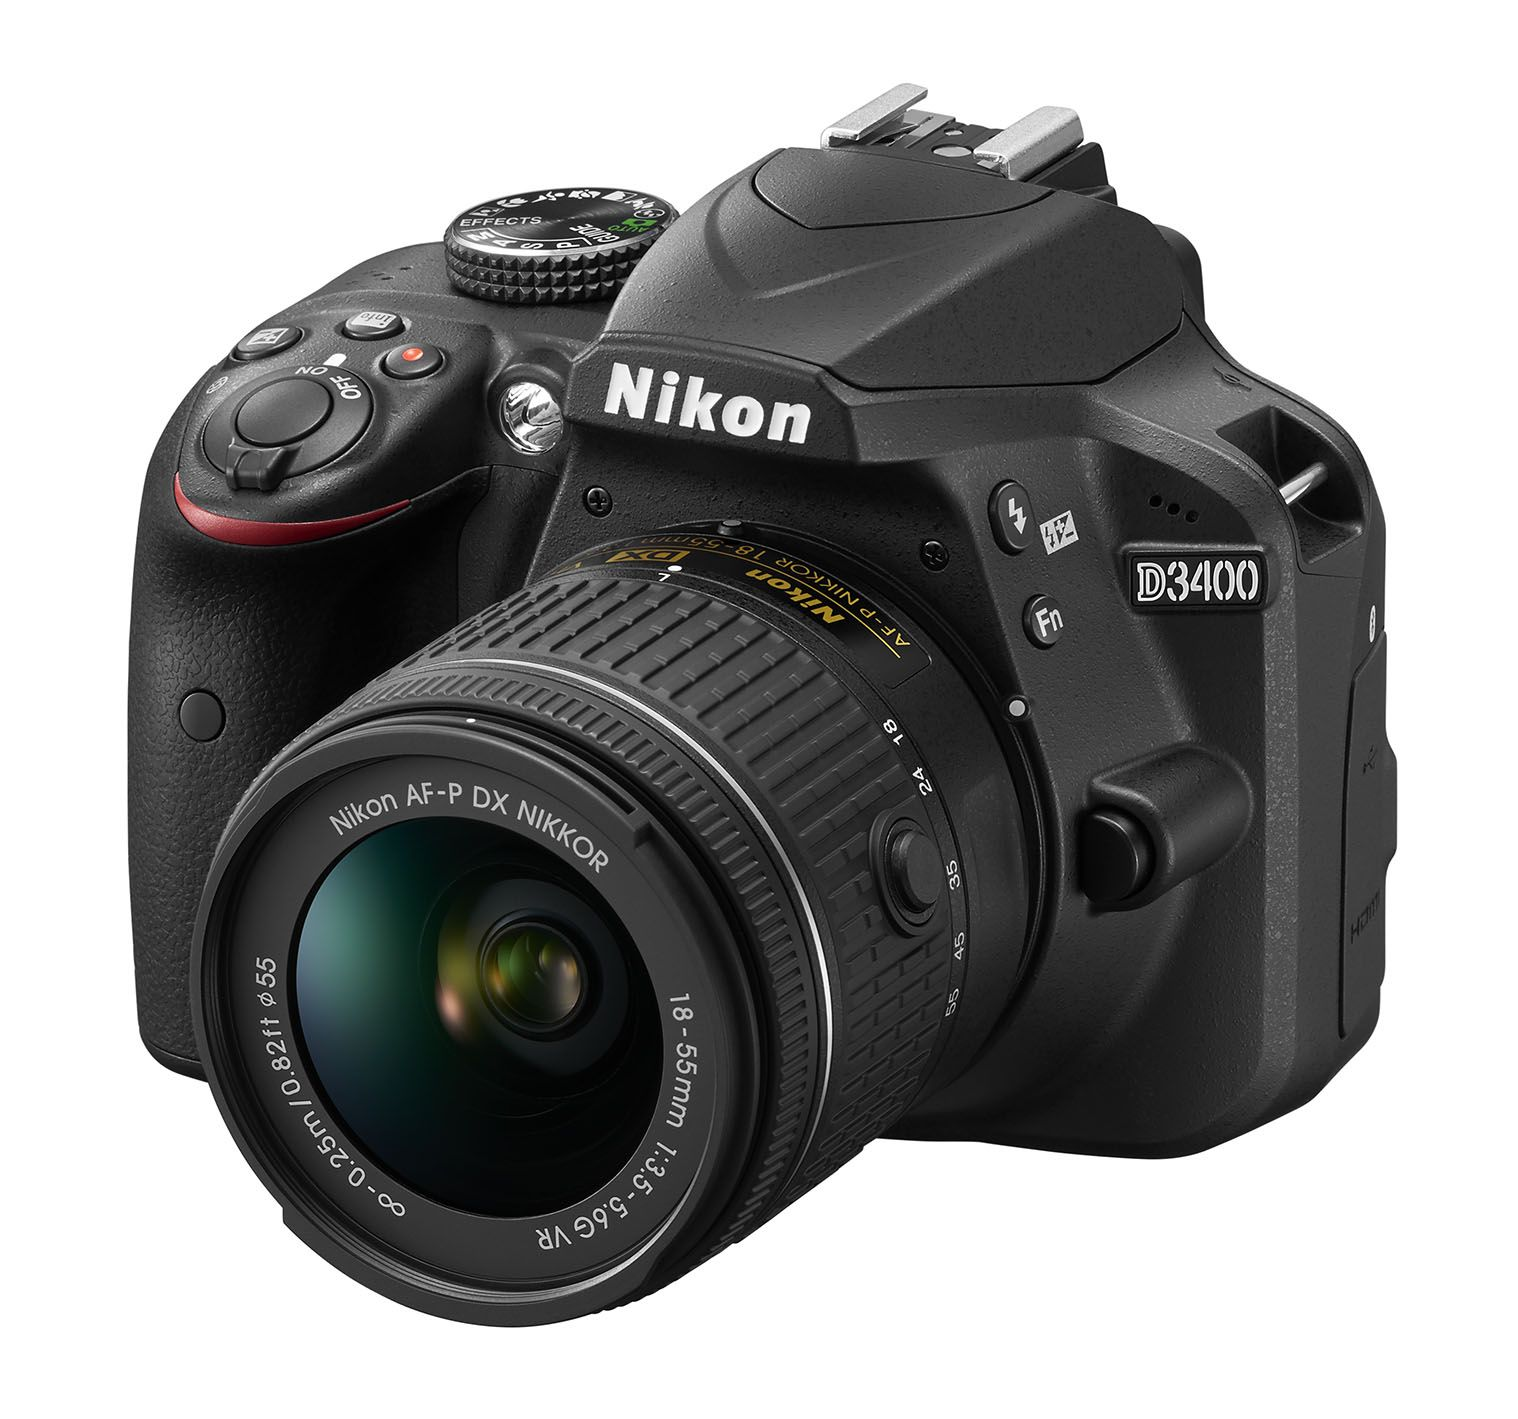 D3400 with Kit Lens